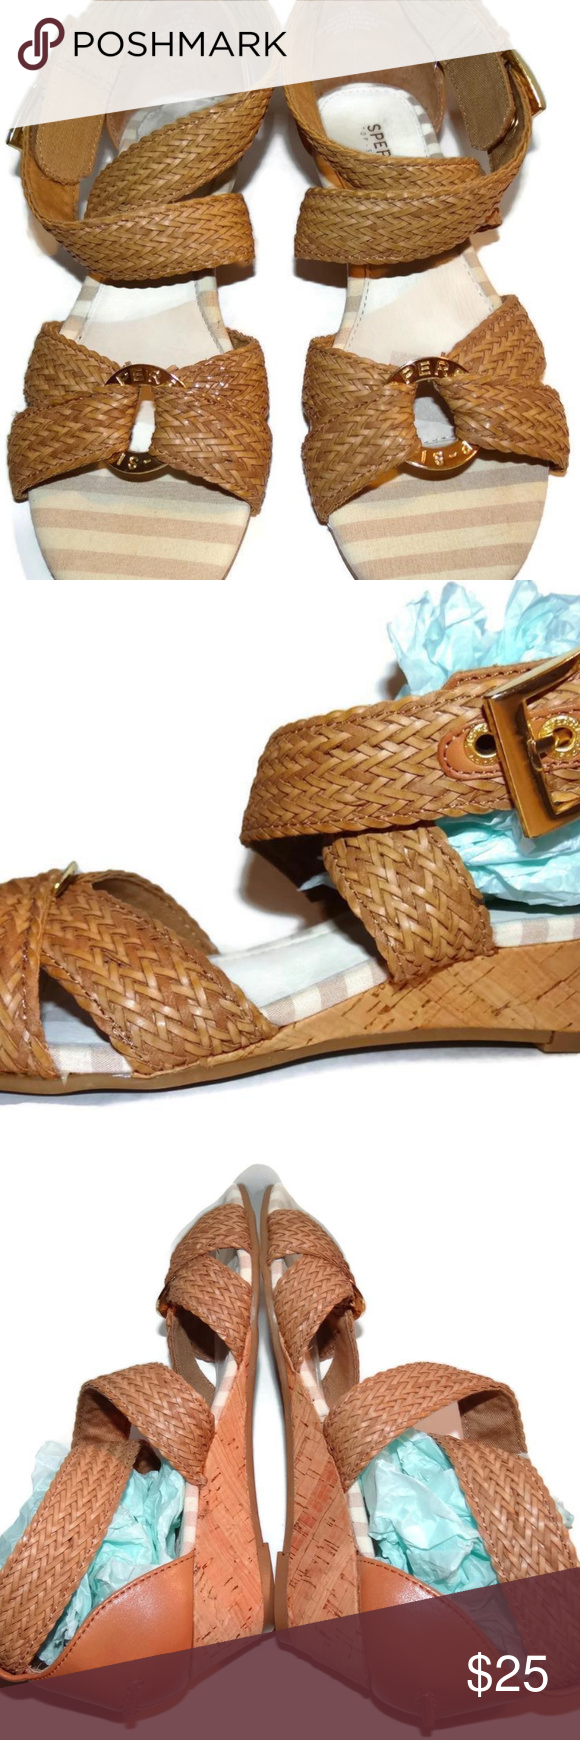 397132c723 Sperry Alvina Wedge Sandal Criss Cross Ankle Strap Make the Alvina by Sperry  top-sider